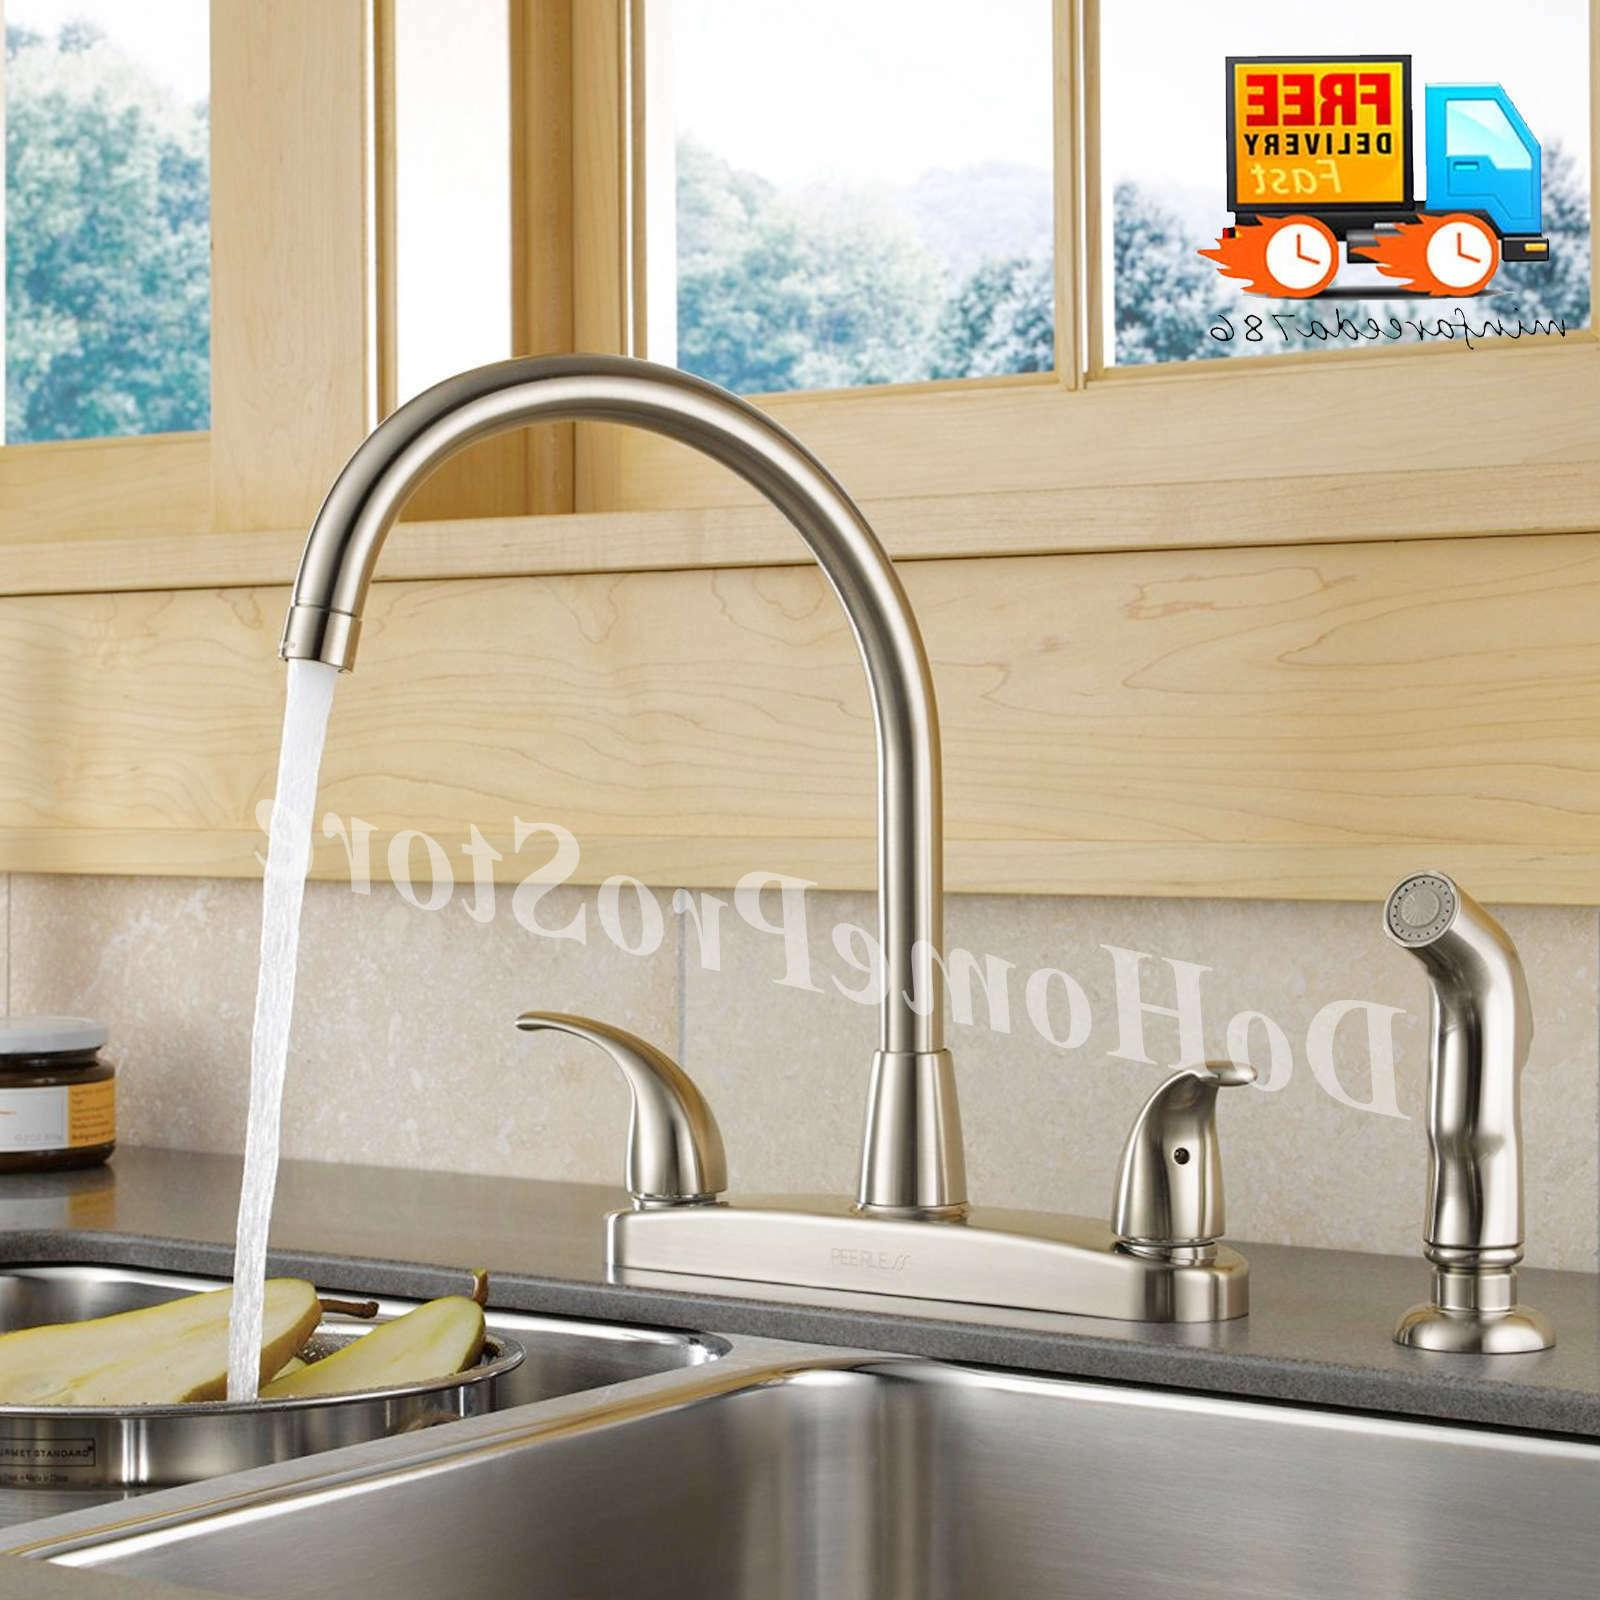 Kitchen Sink Side Brushed Nickel Two High 4